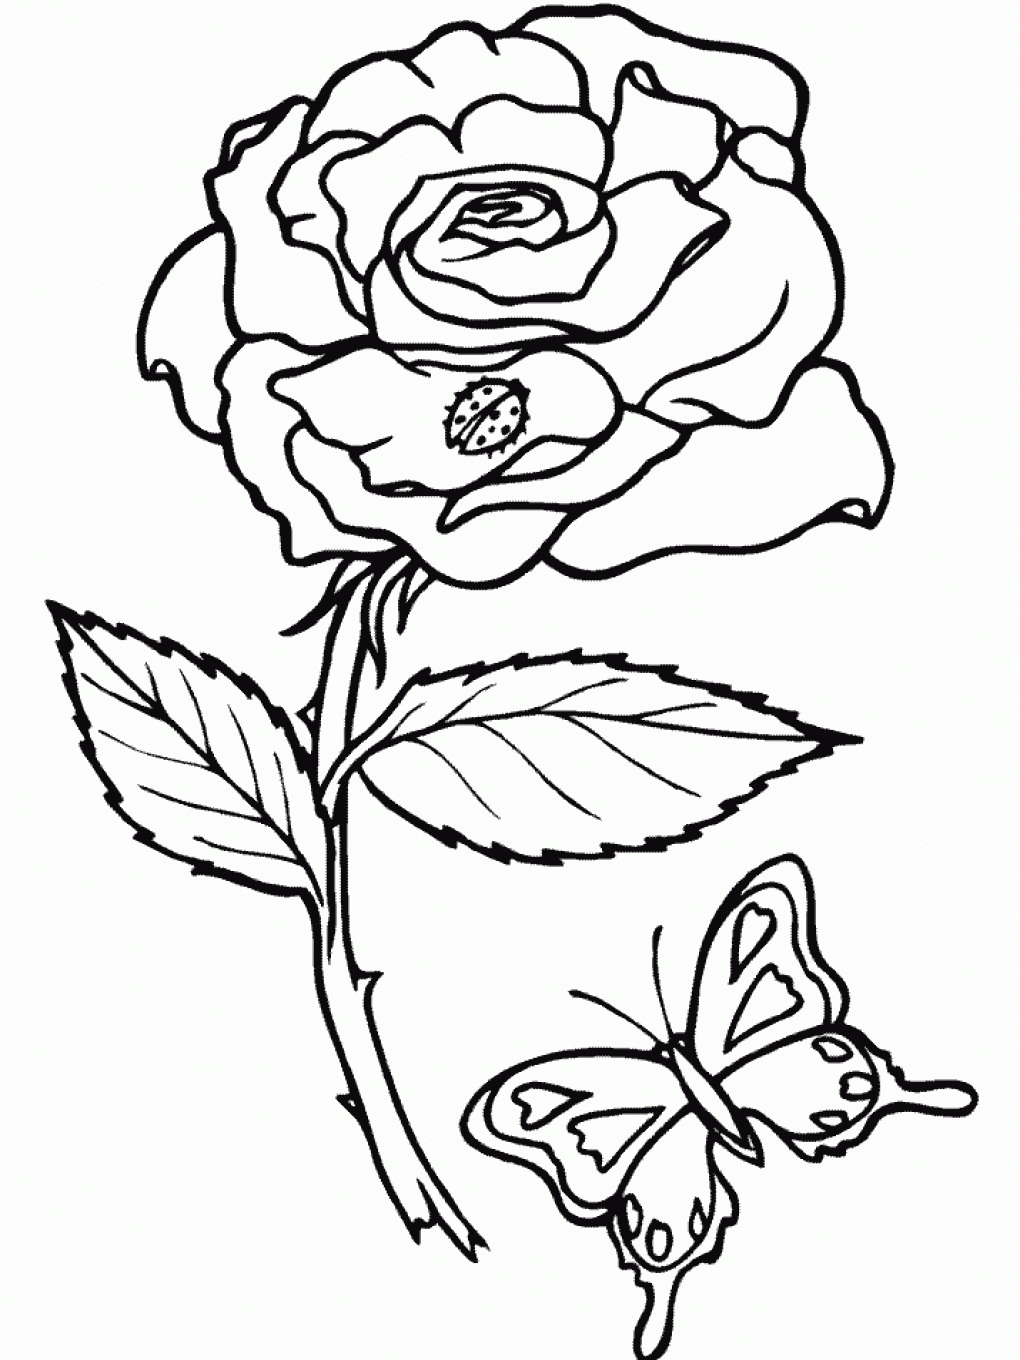 Rose coloring #12, Download drawings